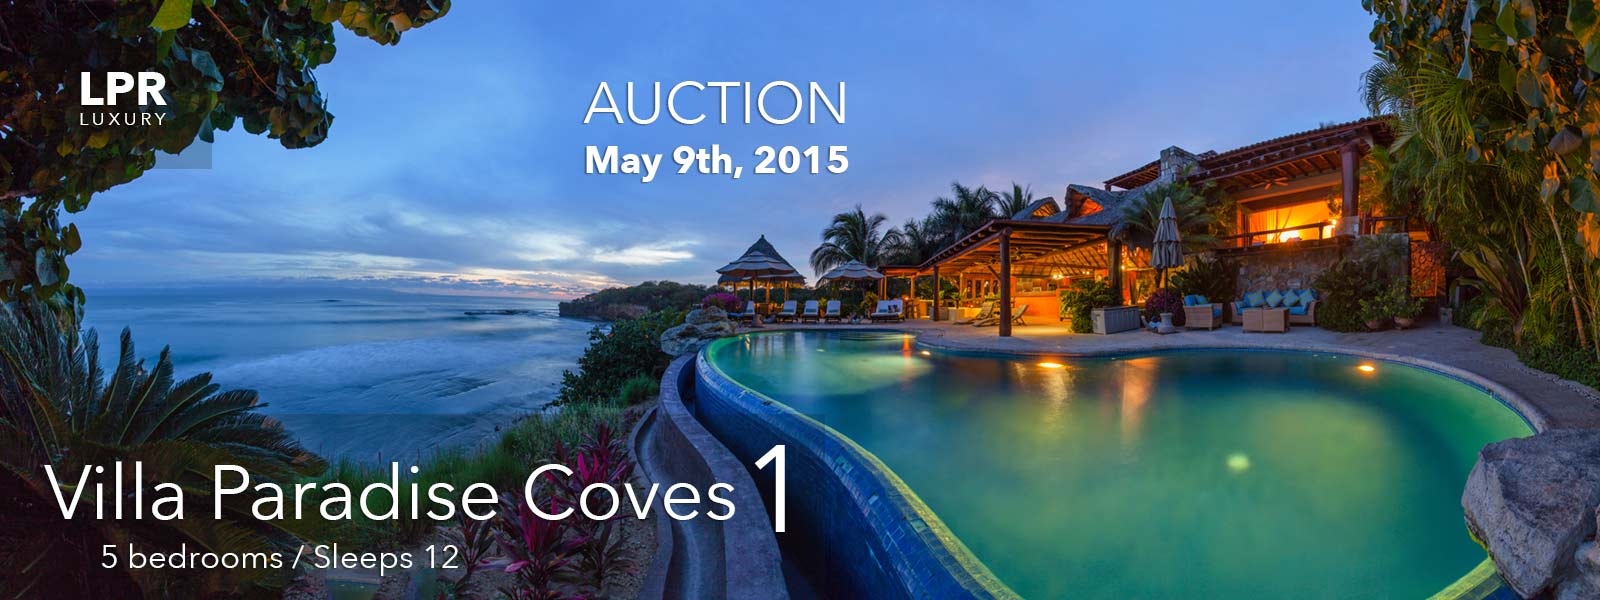 Luxury Real Estate AUCTION! Paradise Coves, Punta de Mita, Riviera Nayarit, Mexico.